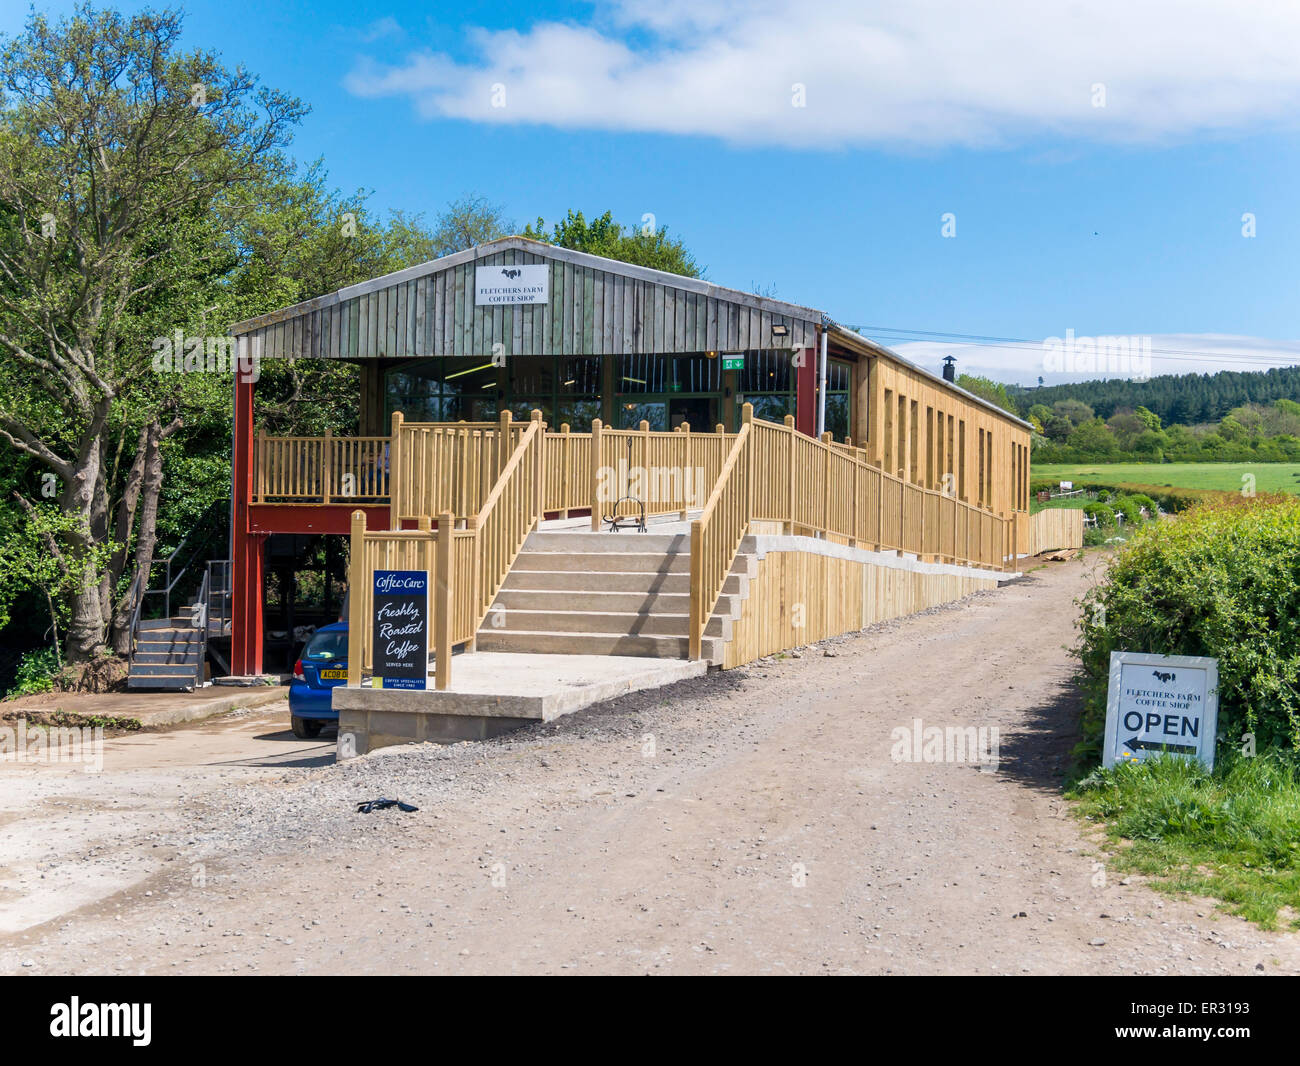 Fletcher's Farm café' newly opened in 2015, to supplement the main business of Dairy Farming and a campsite. - Stock Image